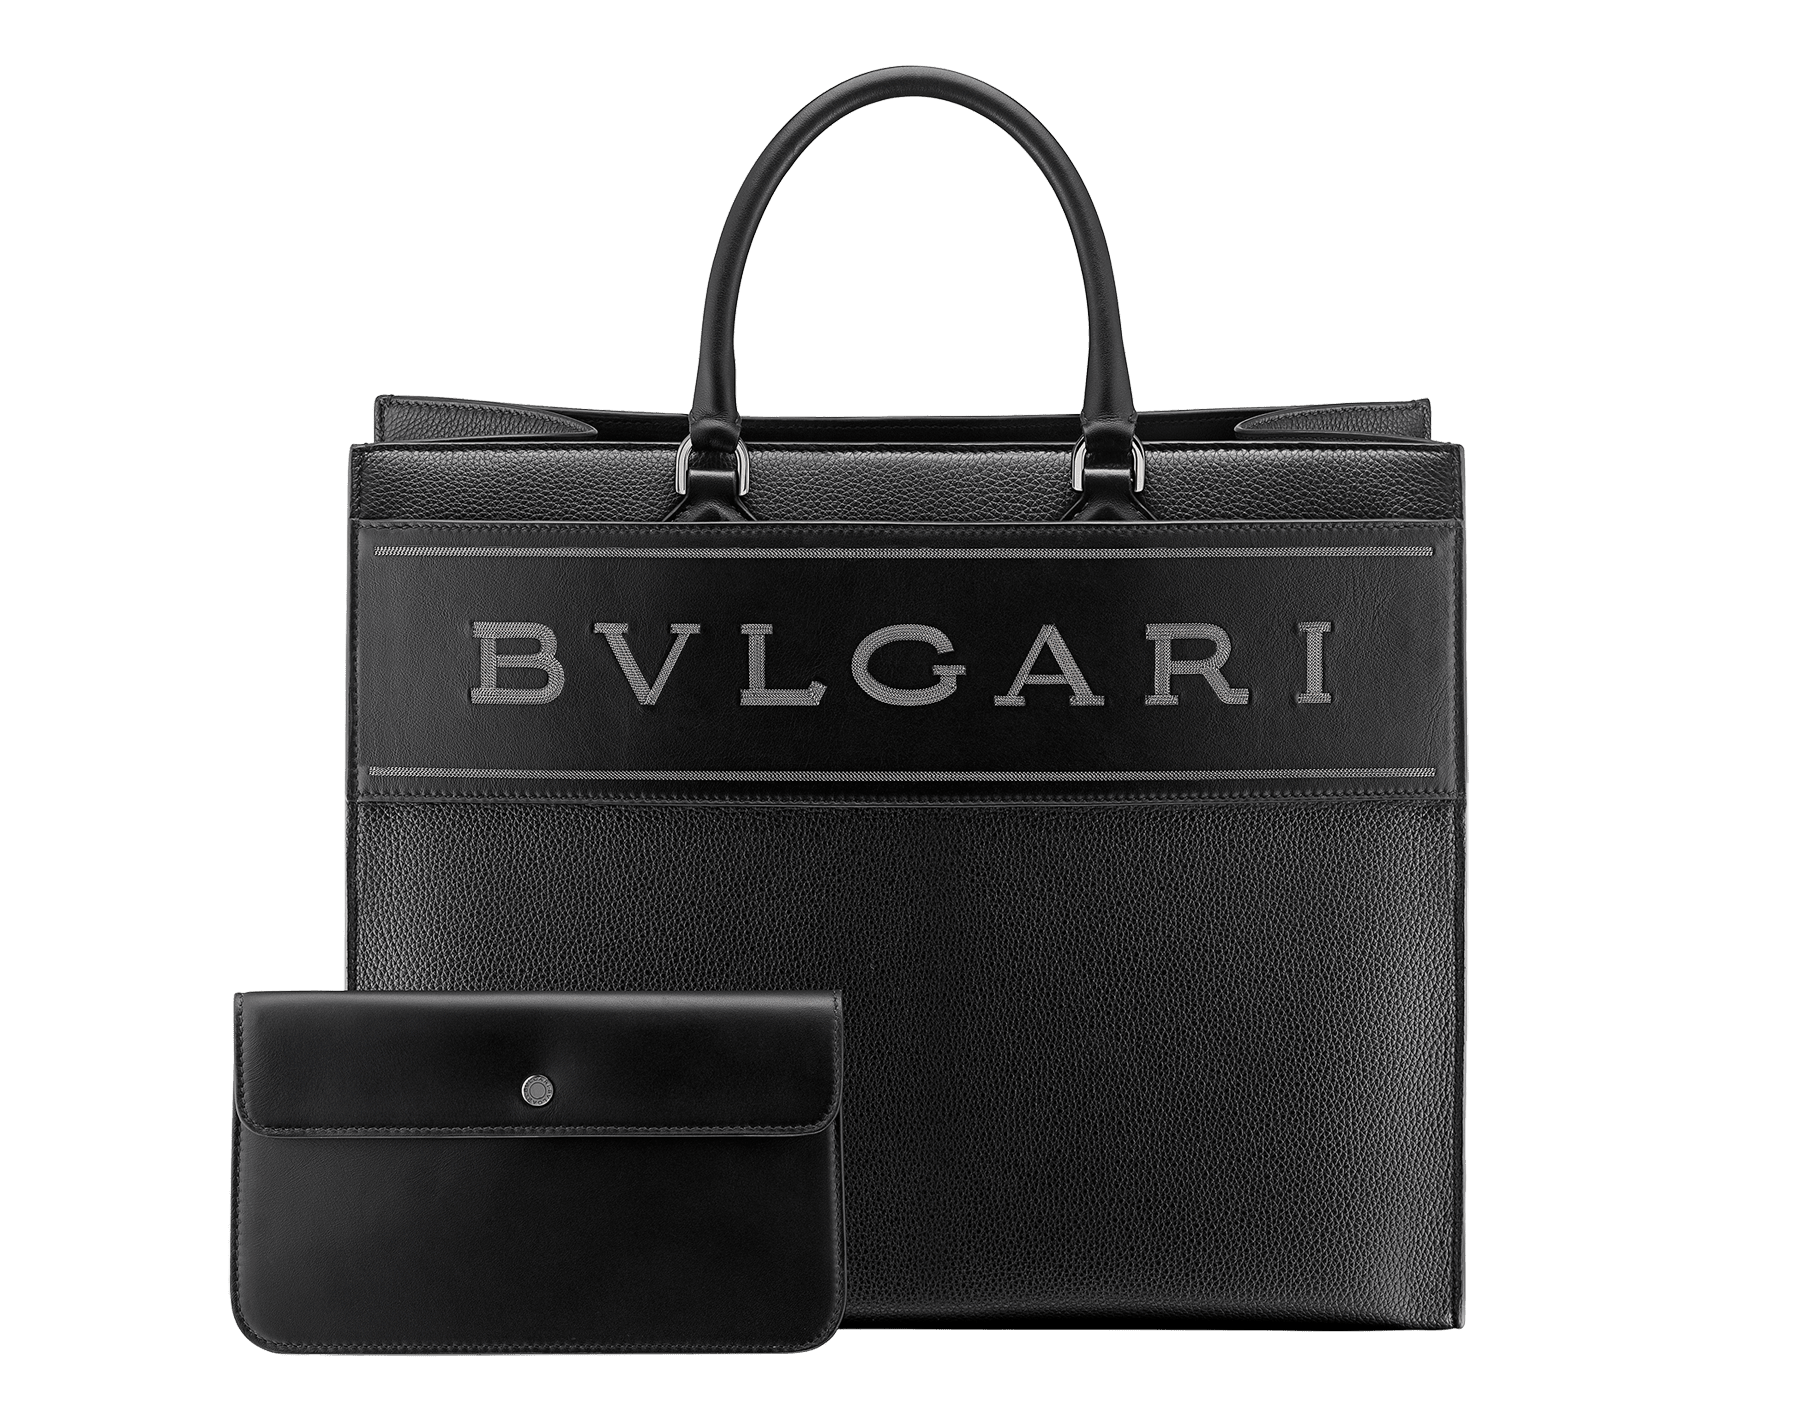 """Bvlgari Logo"" large tote bag in black calf leather, with black grosgrain inner lining. Bvlgari logo featured with dark ruthenium-plated brass chain inserts on the black calf leather. BVL-1160 image 4"